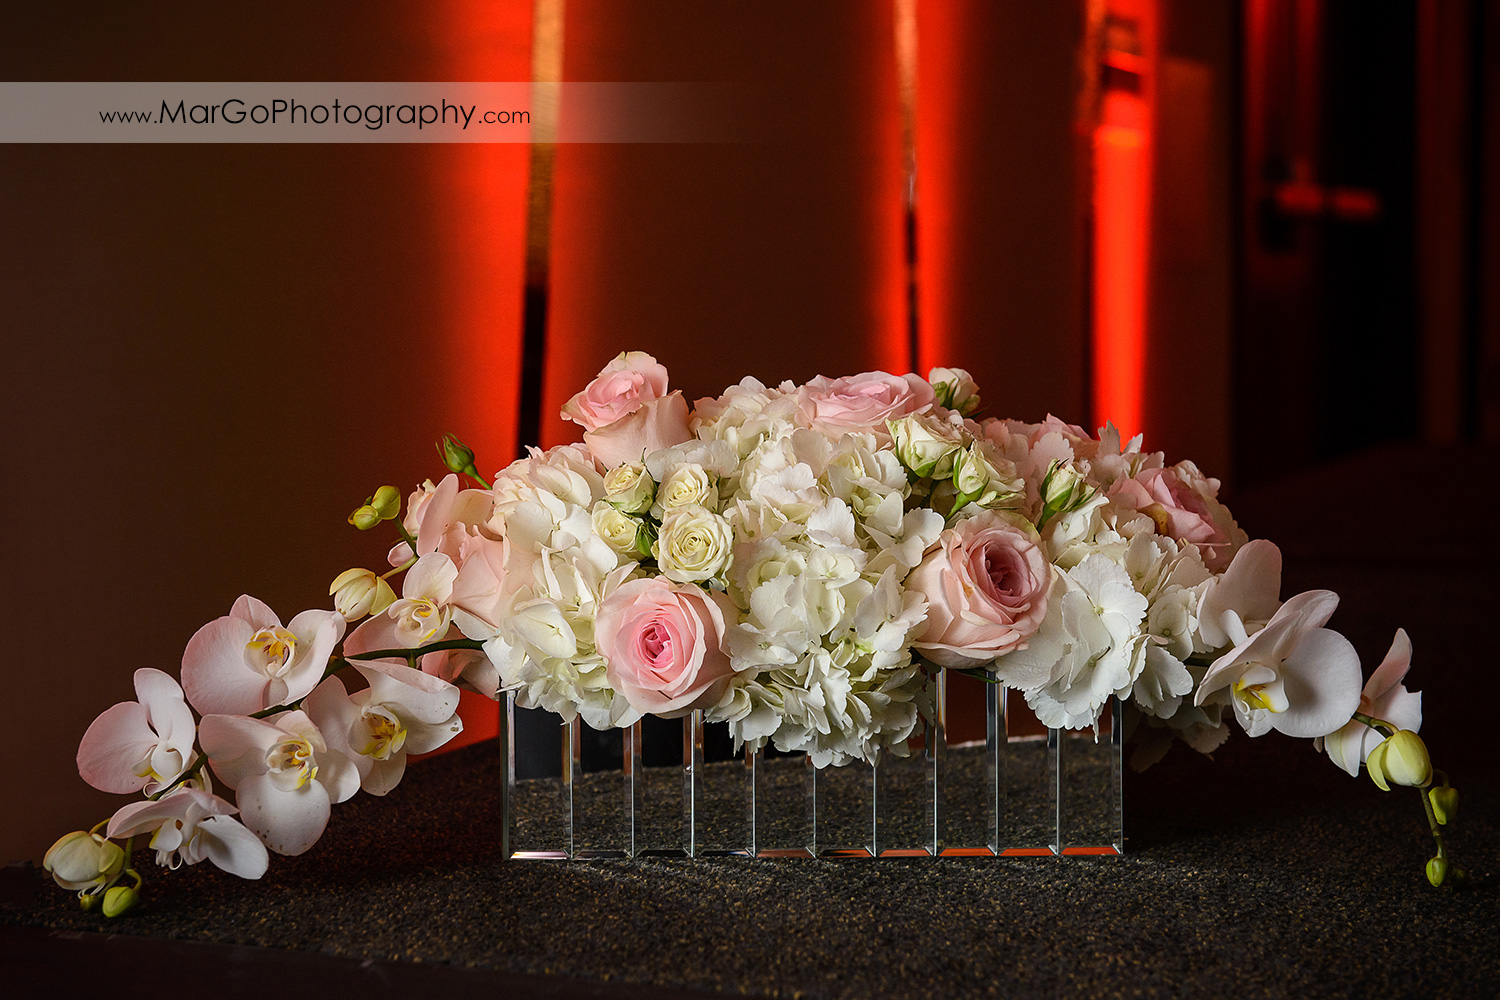 sweetheart table decor at Hilton San Francisco Airport Bayfront in Burlingame